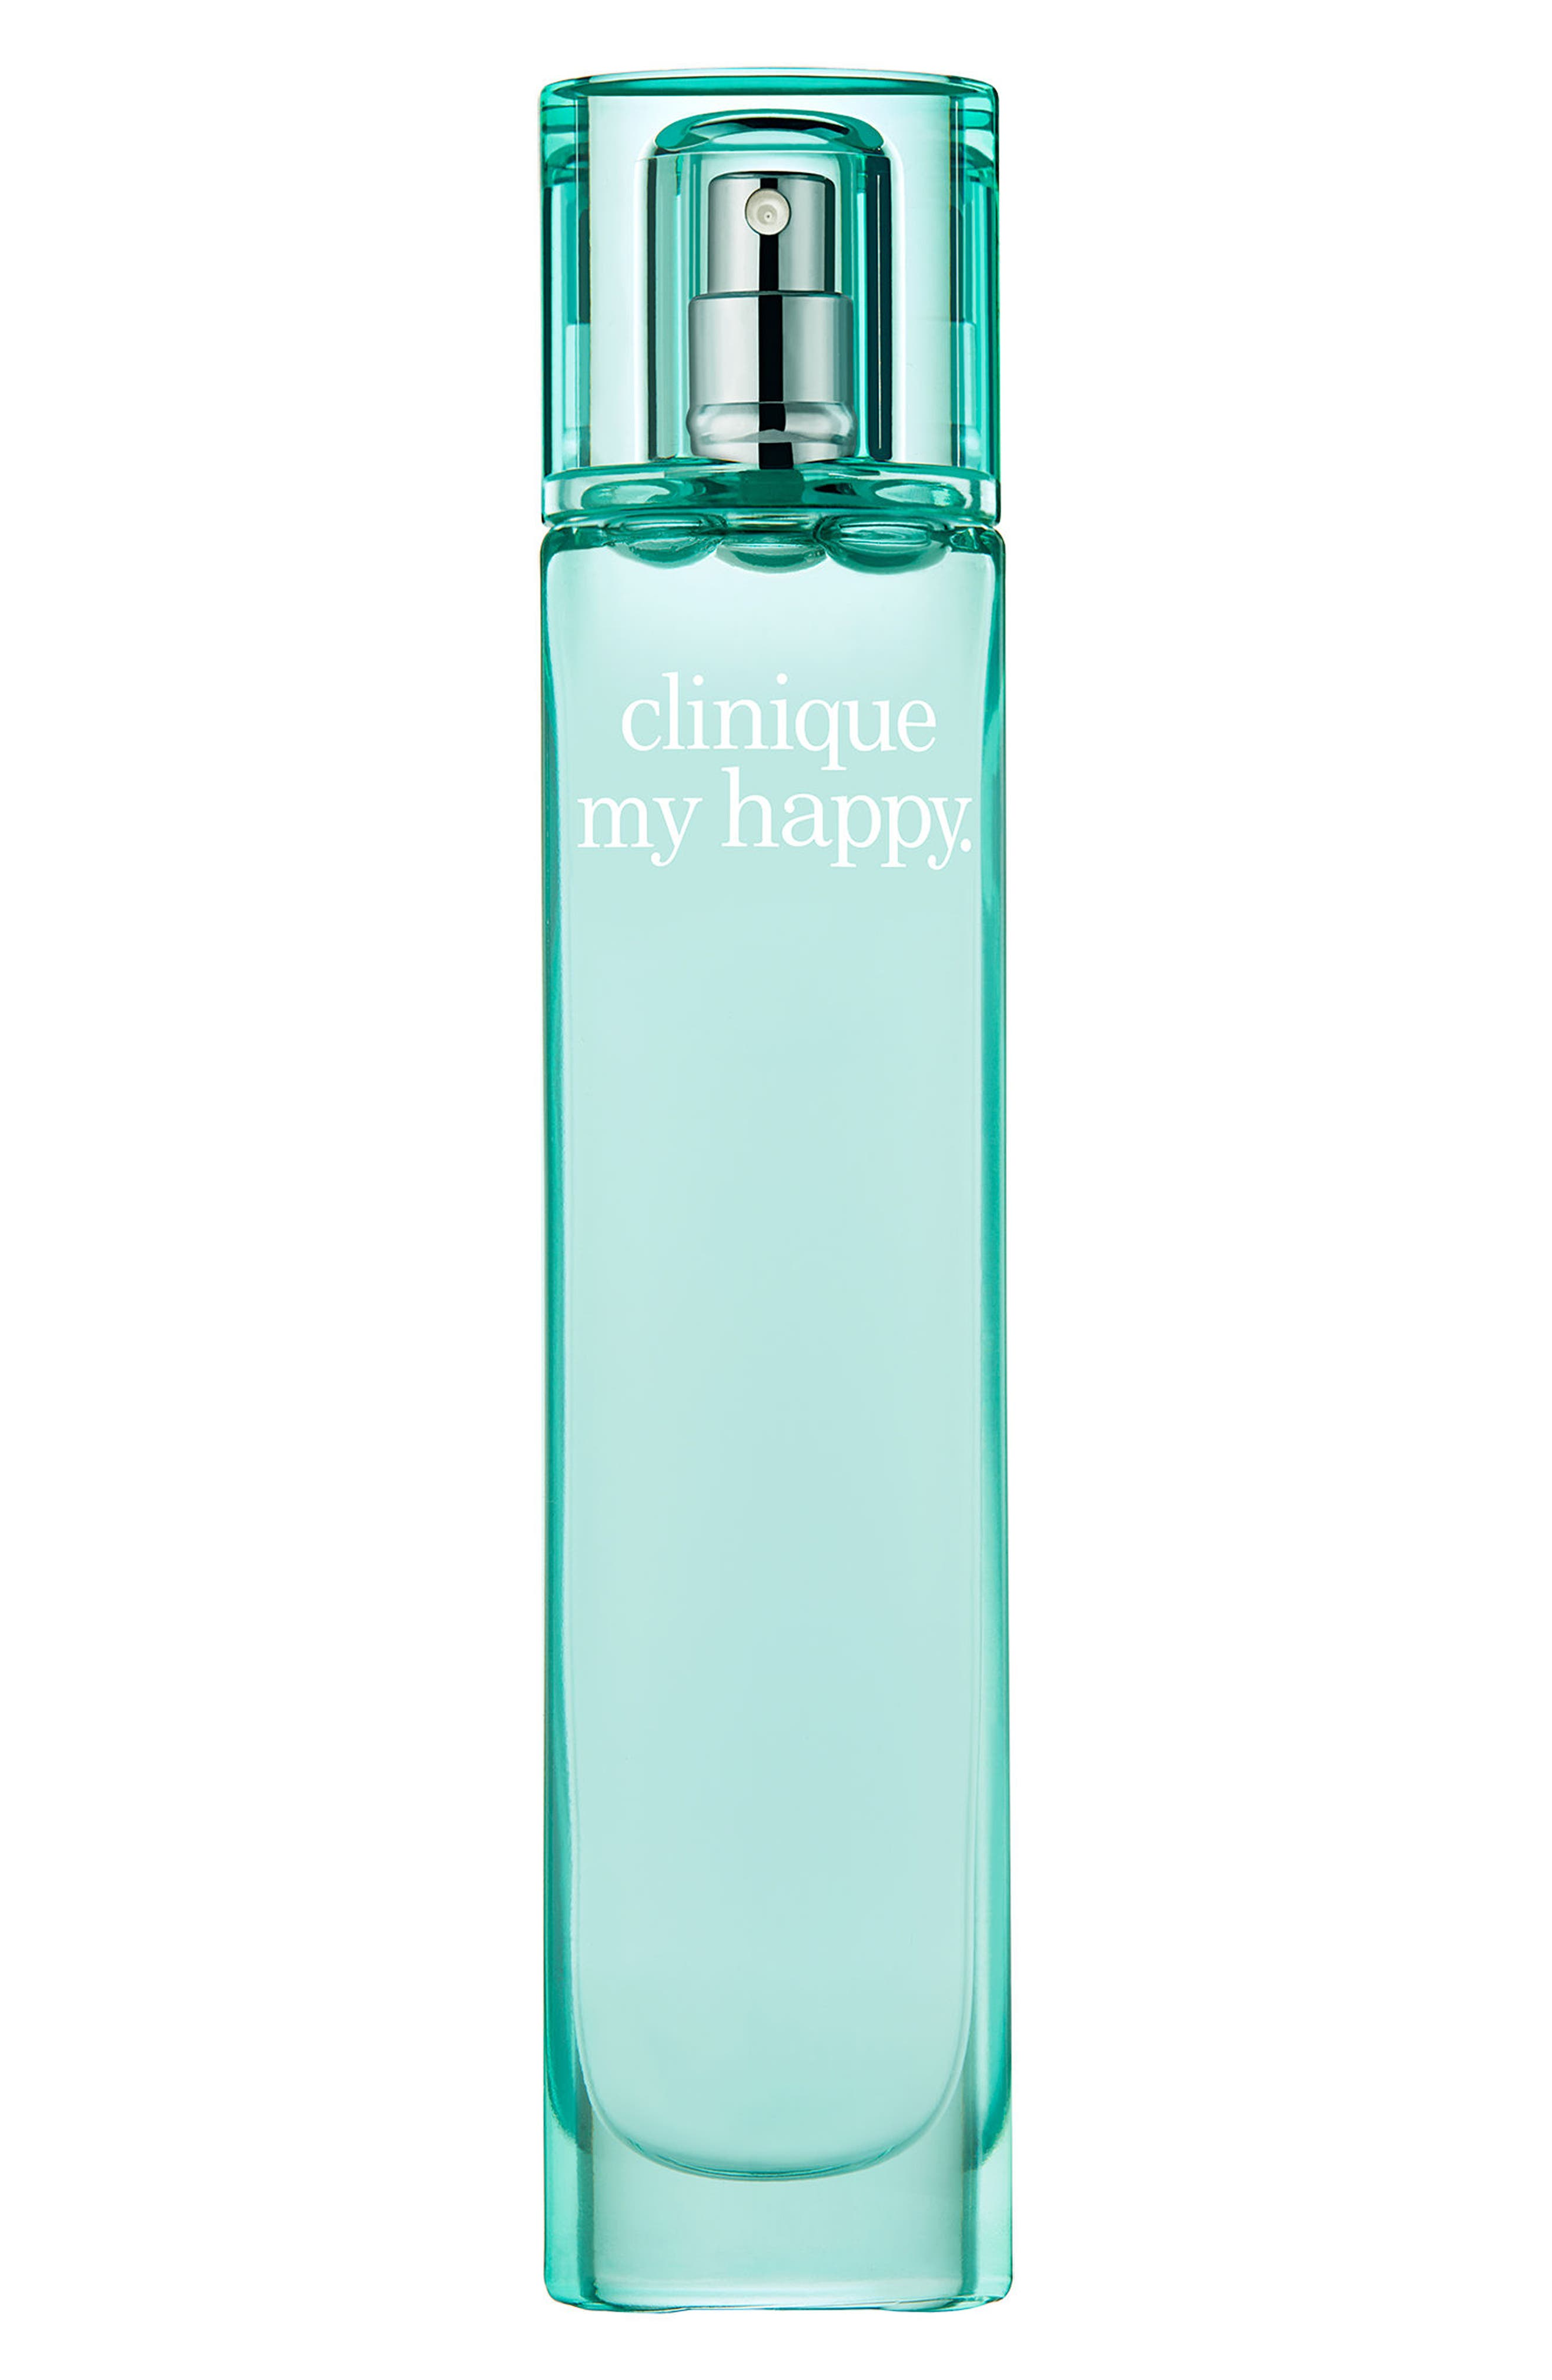 Women\'s Fragrance New Arrivals: Clothing, Shoes & Beauty | Nordstrom